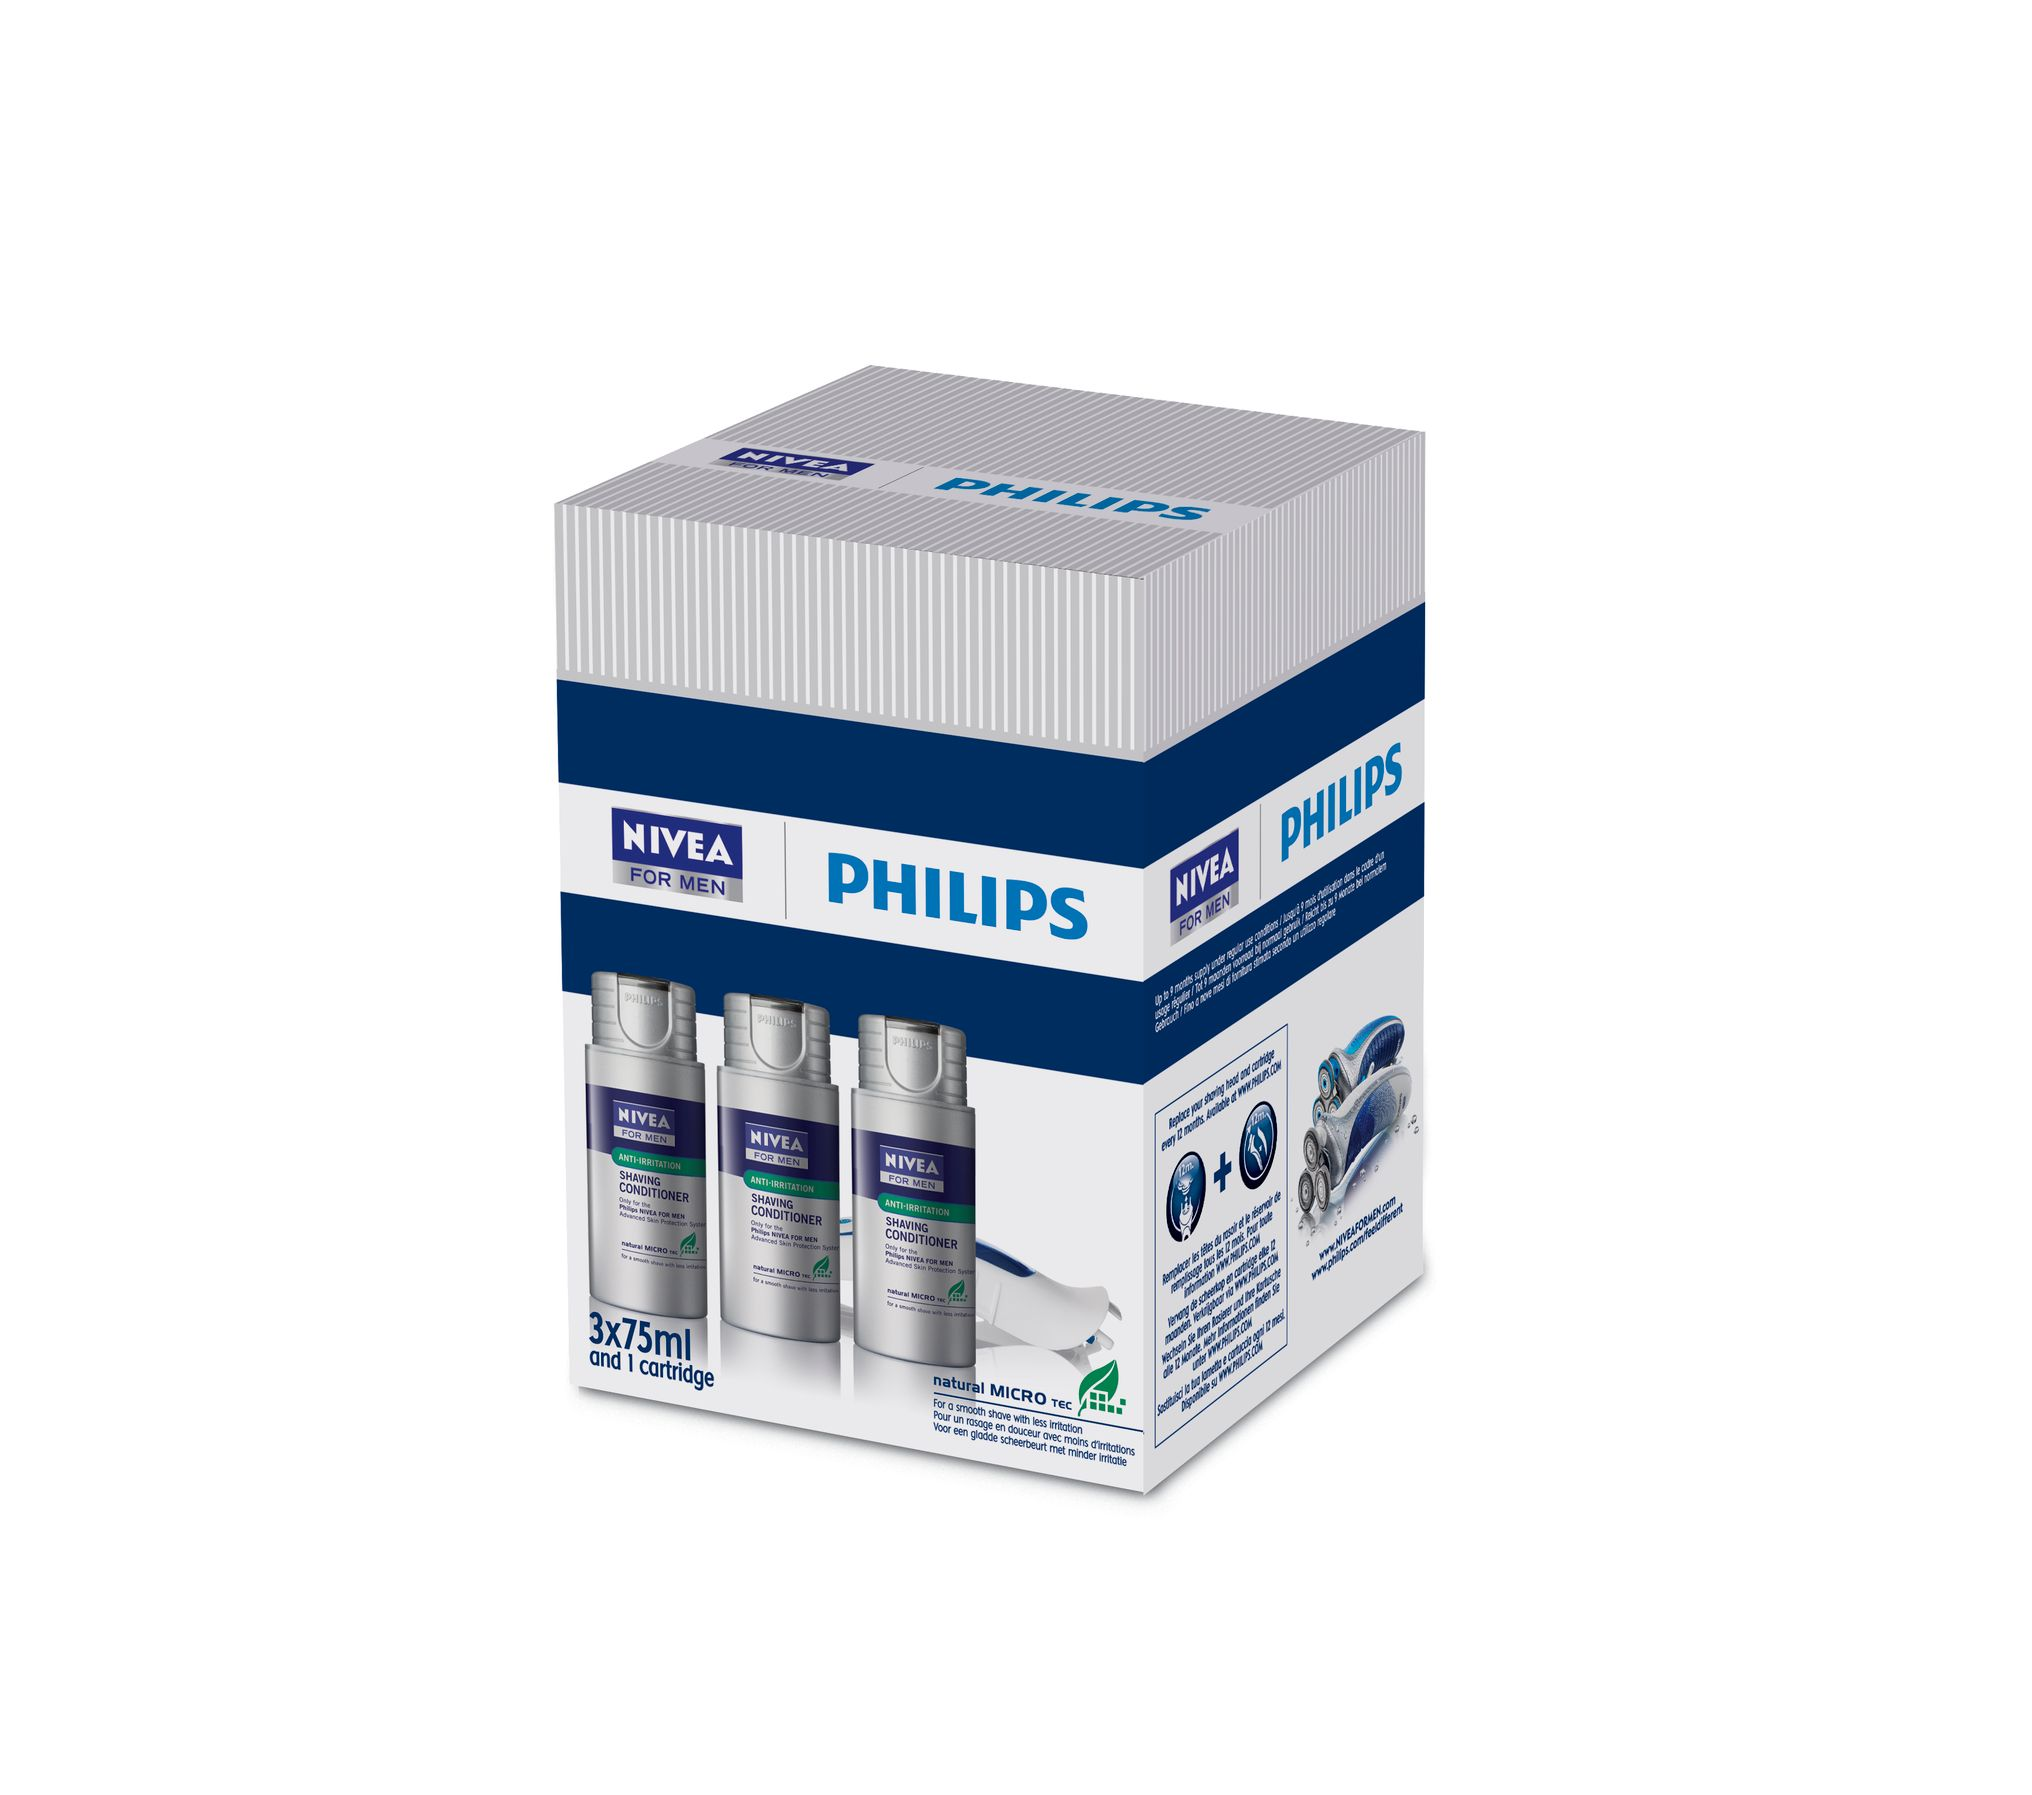 Philips NIVEA FOR MEN Shaving Balm product image